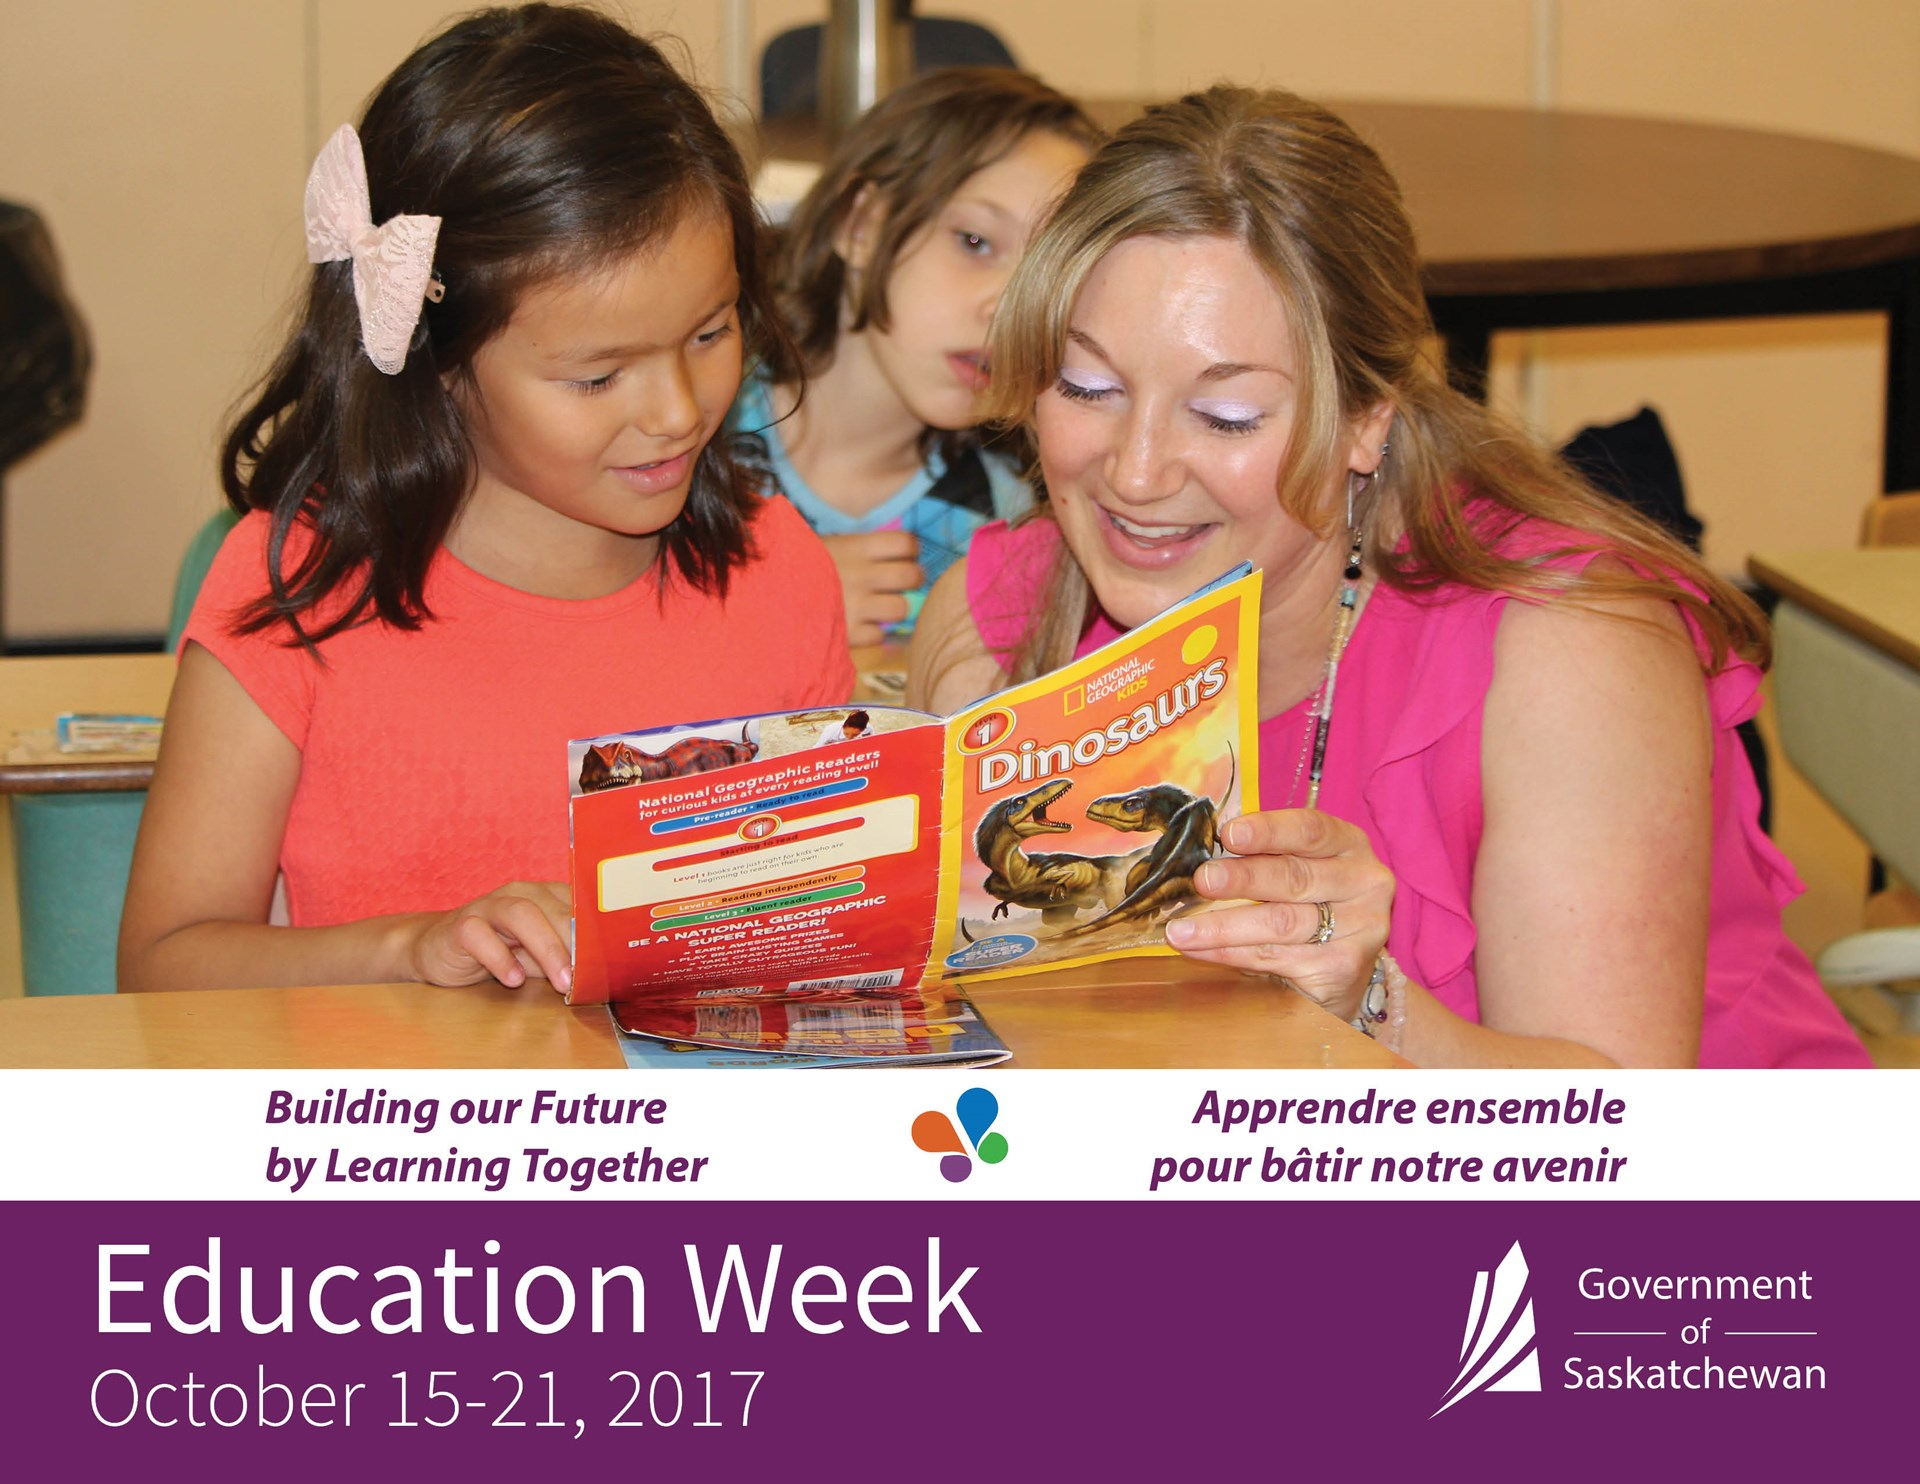 education-week-2017-SD%20Display+Web+Twitter.jpg